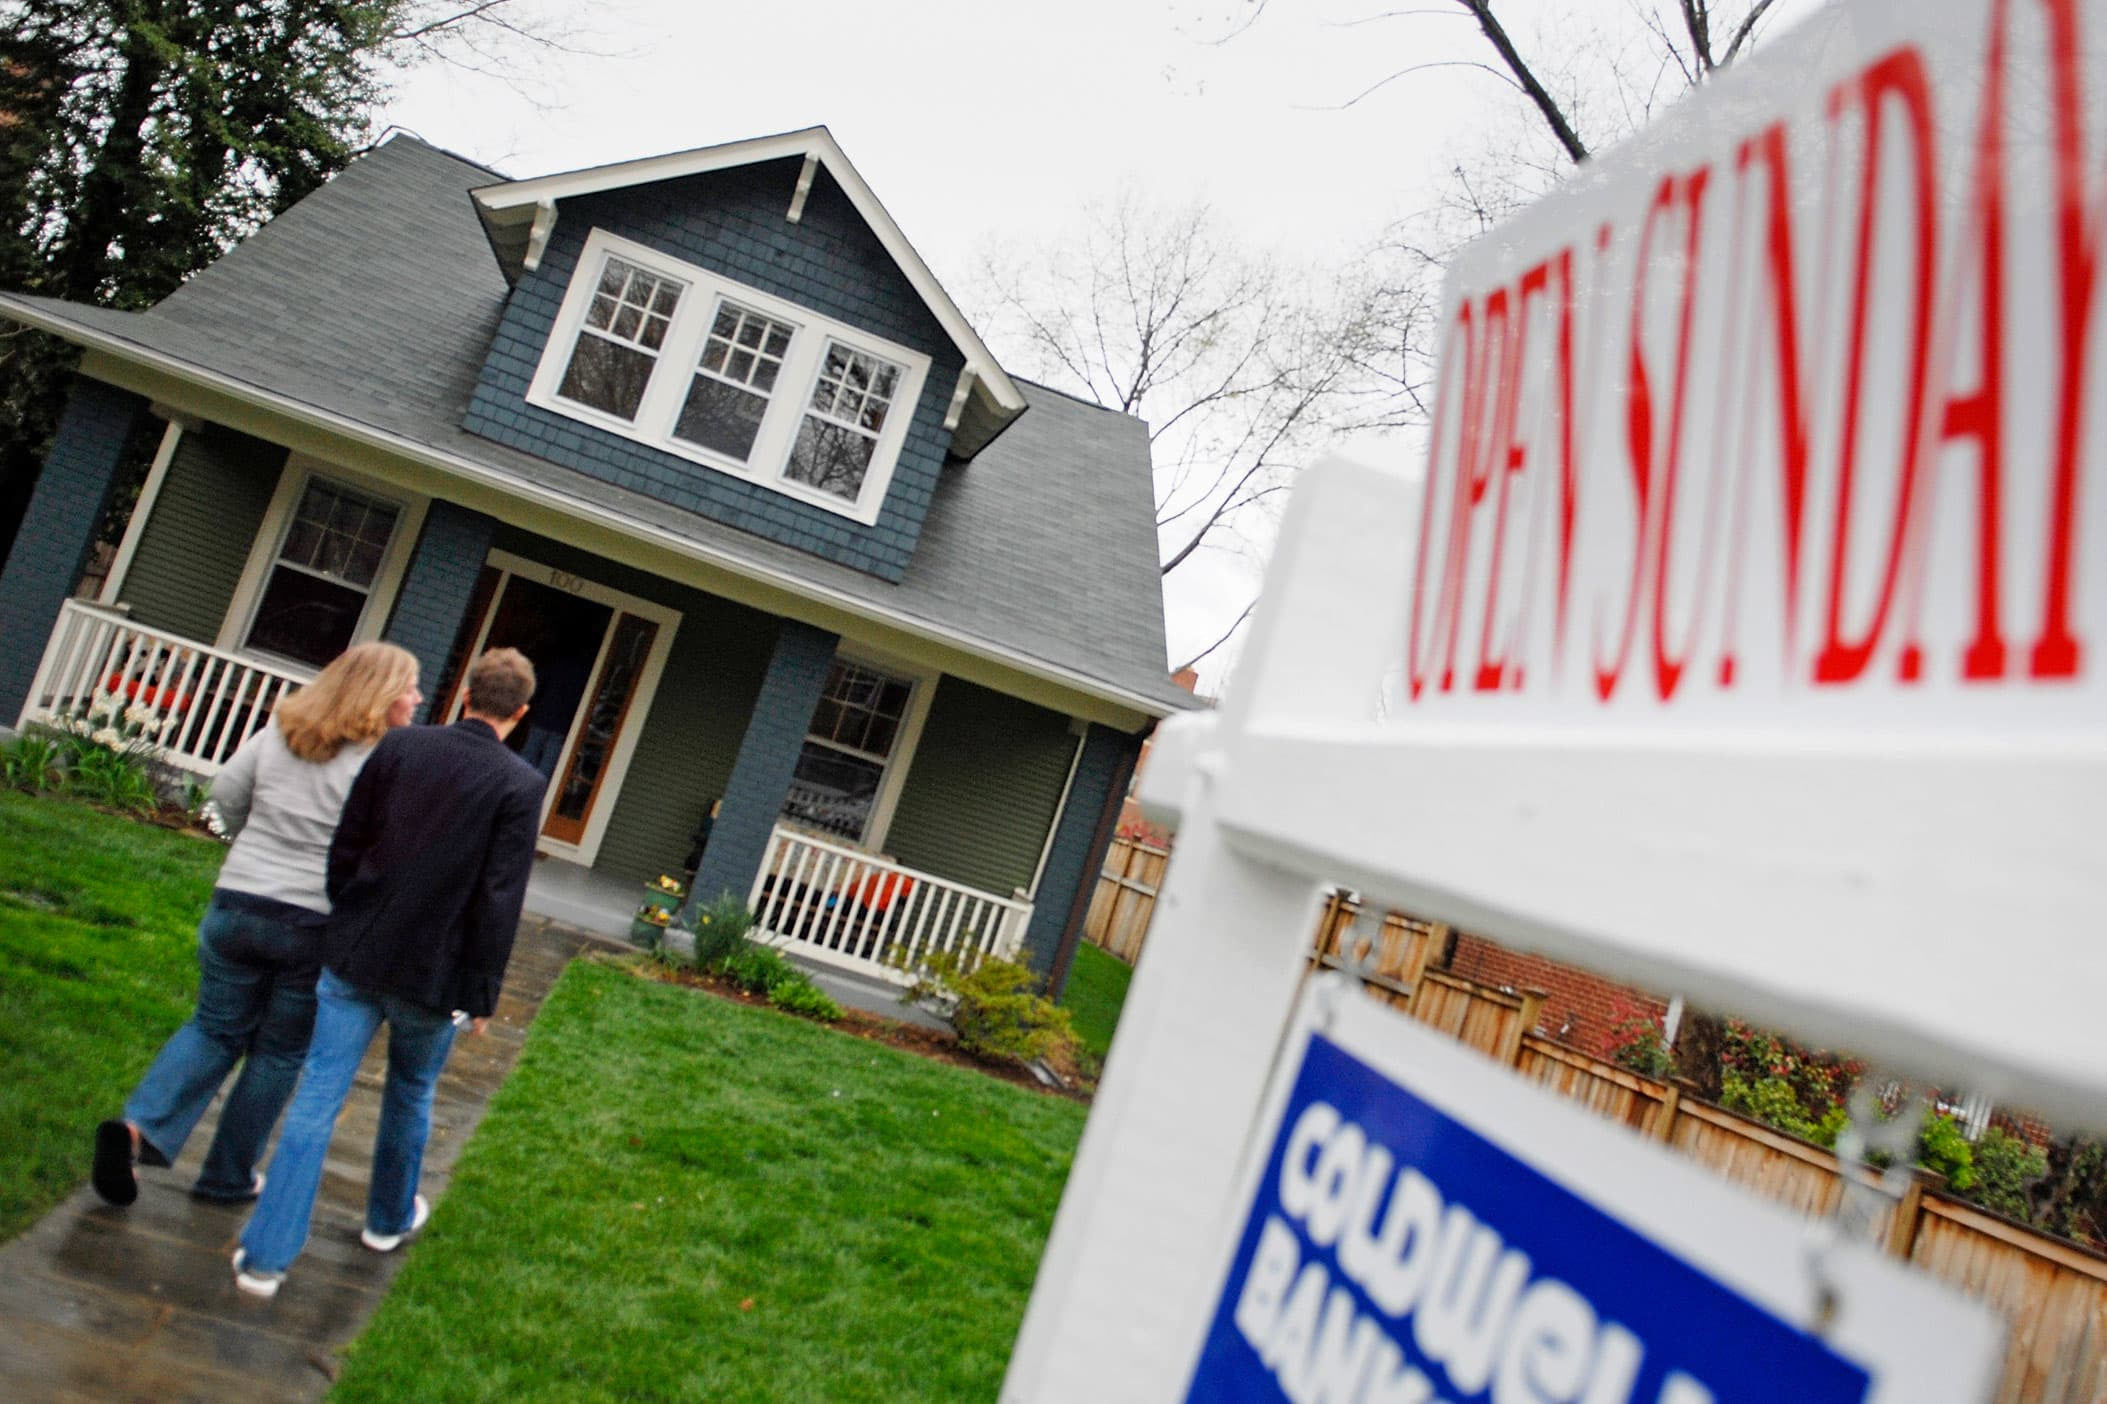 Bidding wars, lack of houses and desperate buyers: How to navigate buying a home this spring